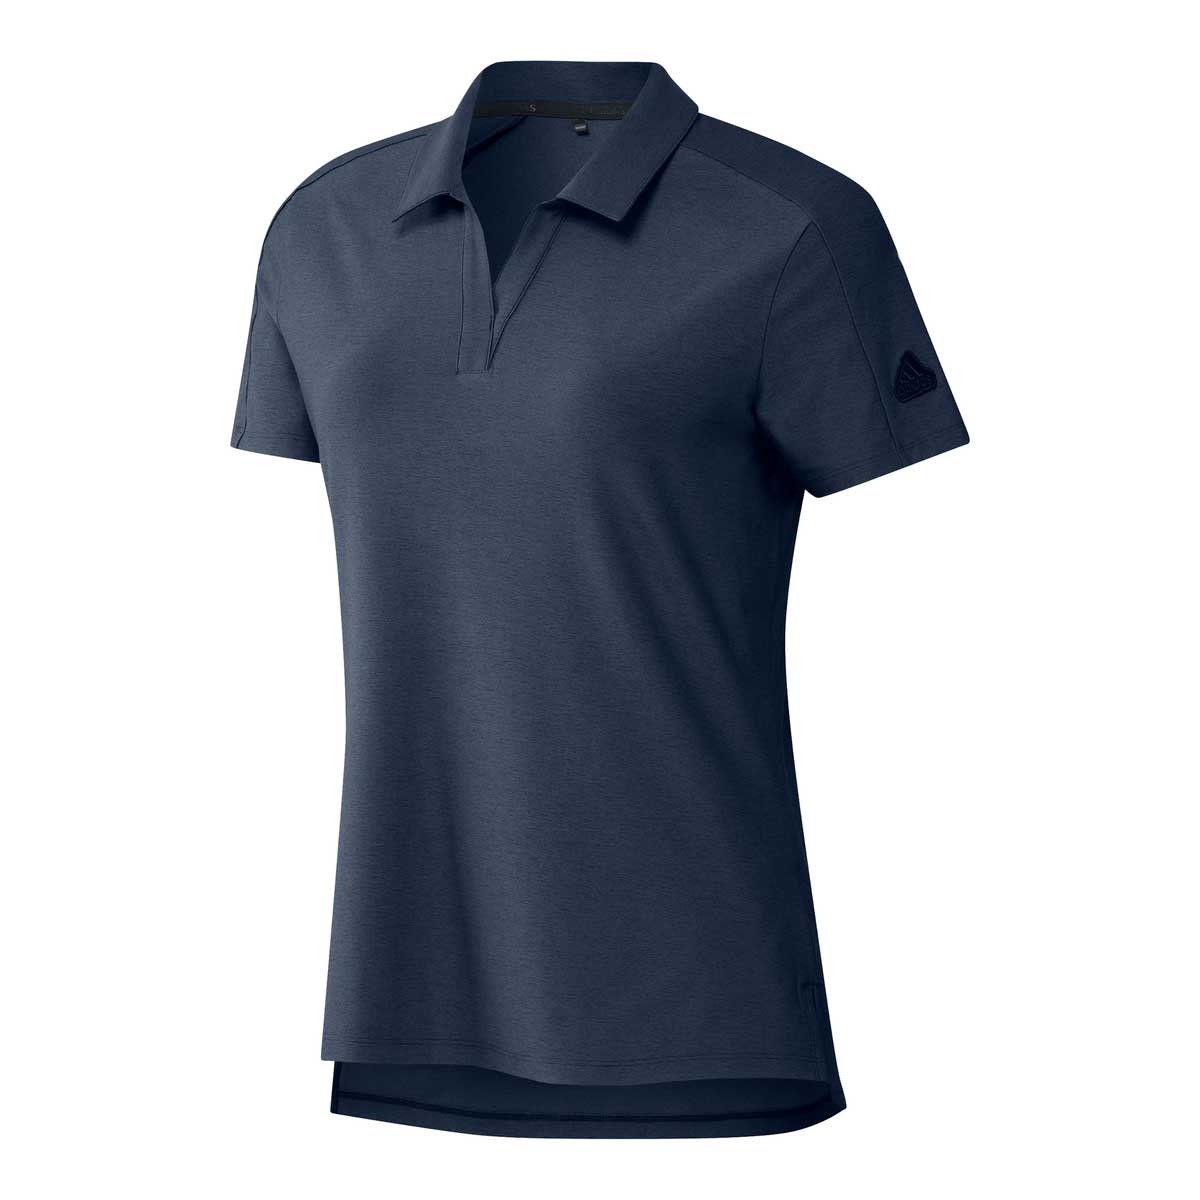 Adidas Women's Go-To Solid Crew Navy Polo